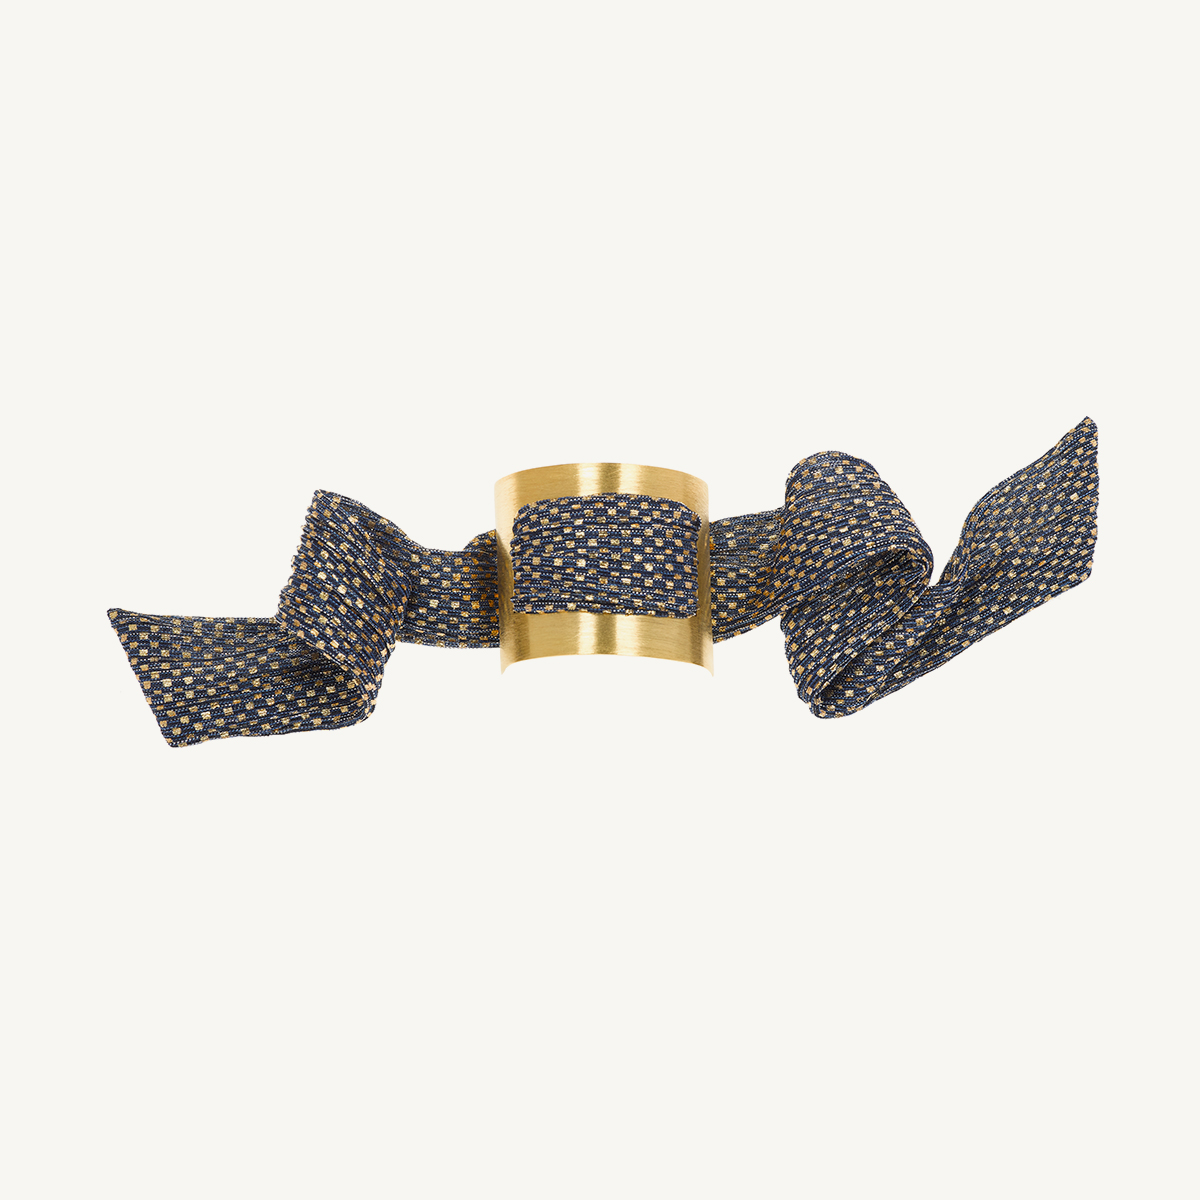 Nomad Cuff by Nupié yellow gold plated with navy blue and gold lurex scarf